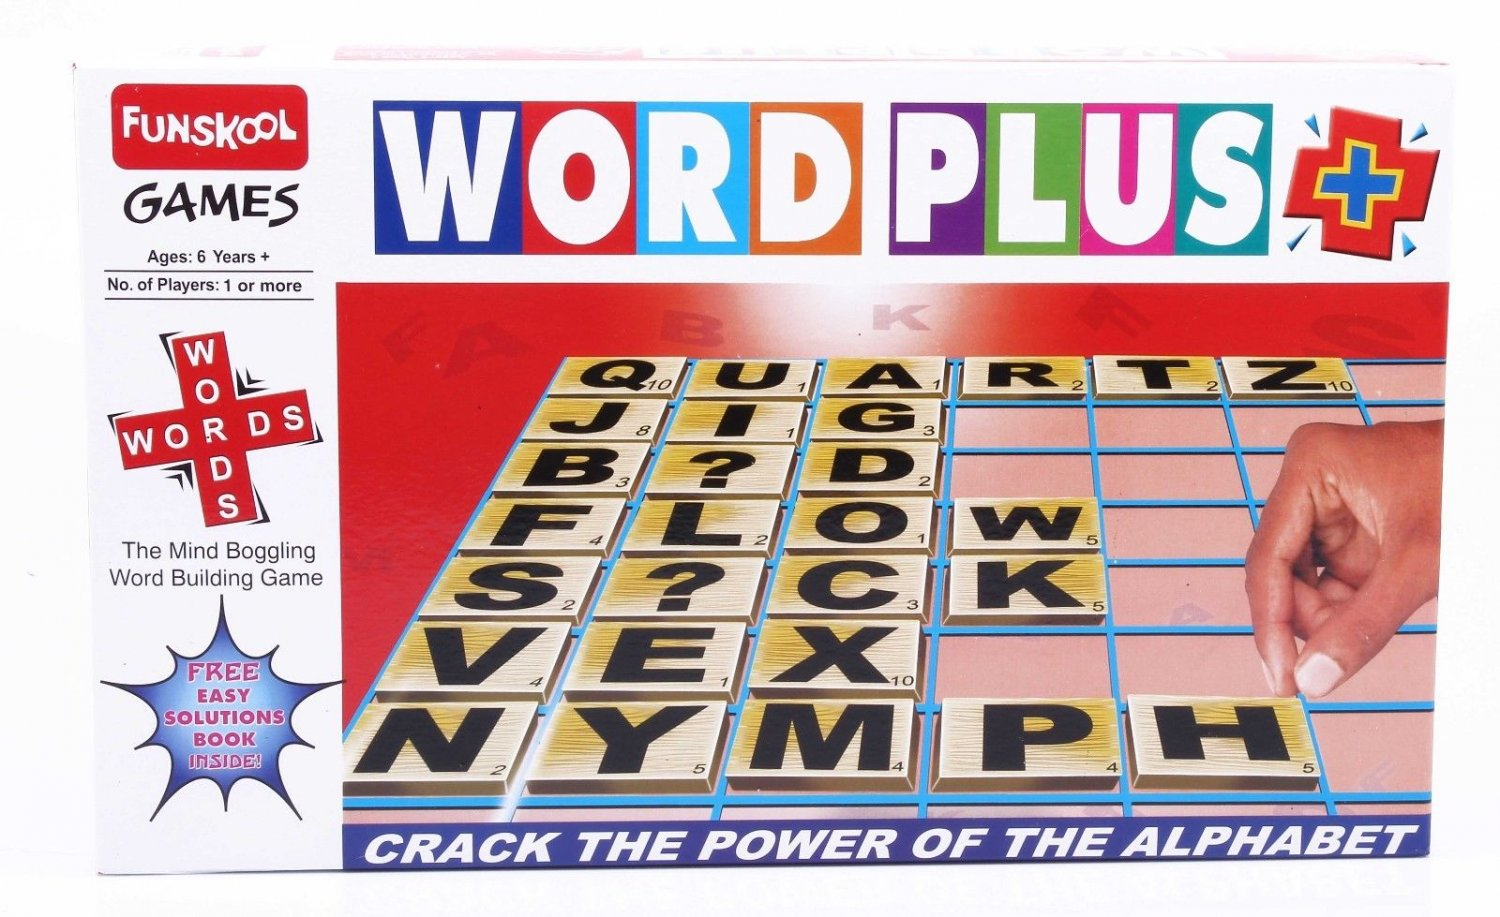 Funskool Word Plus Memory & Matching Game Players 2-4 Age 6+